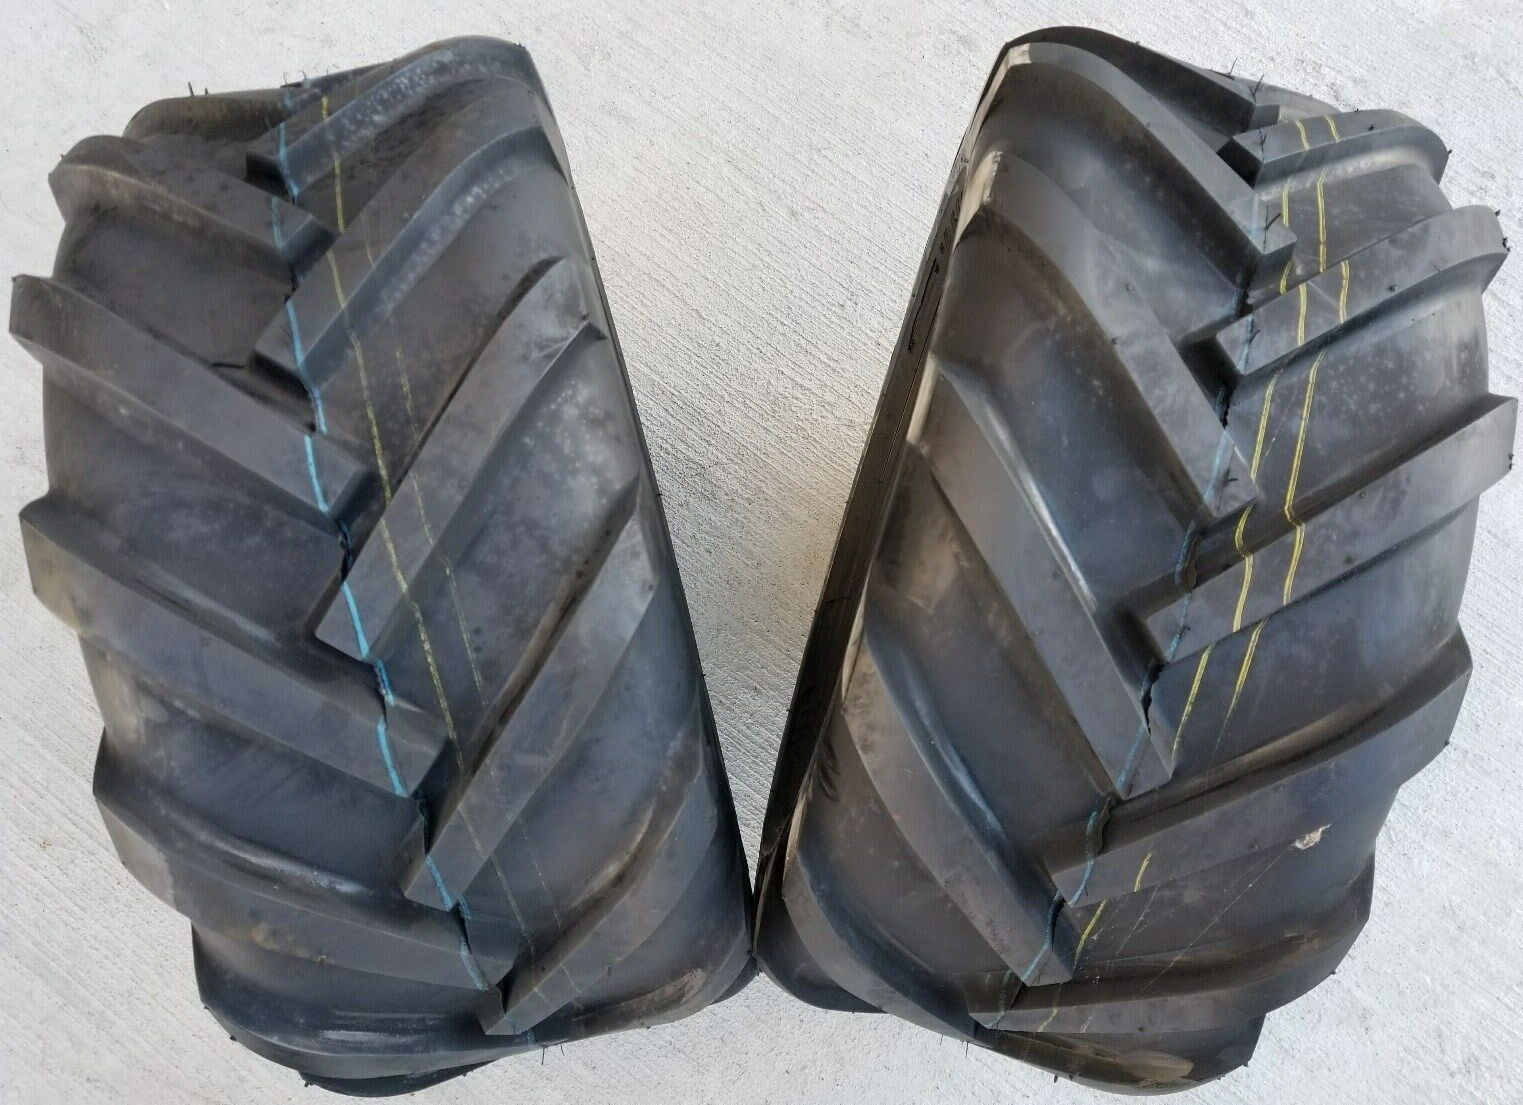 2 23x10 50 12 Deestone 4p Super Lug Tires Ag Ds5245 Free Shipping 1 Of 8 See More